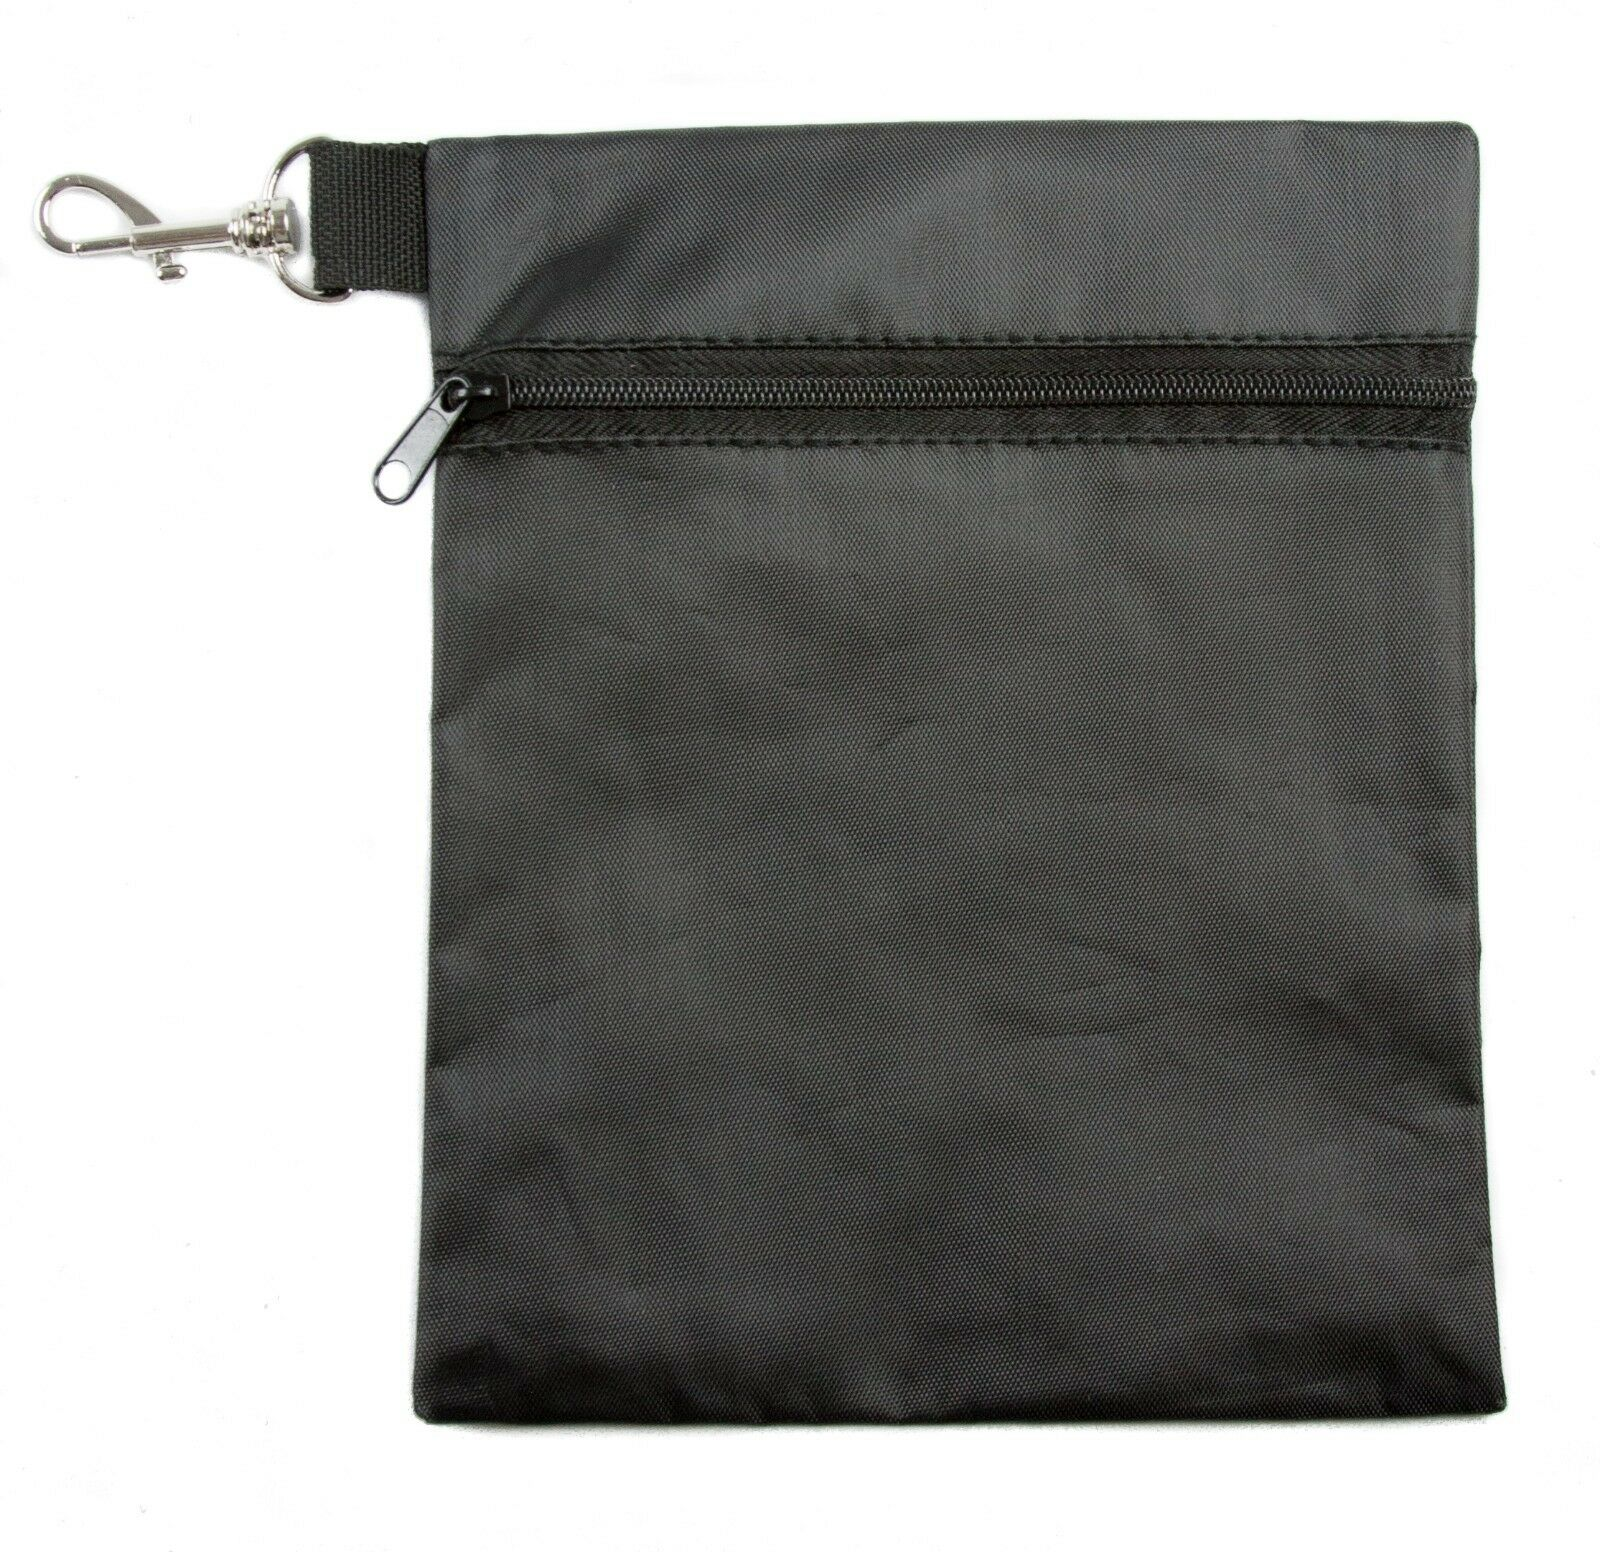 single pocket tee ball accessory and valuables